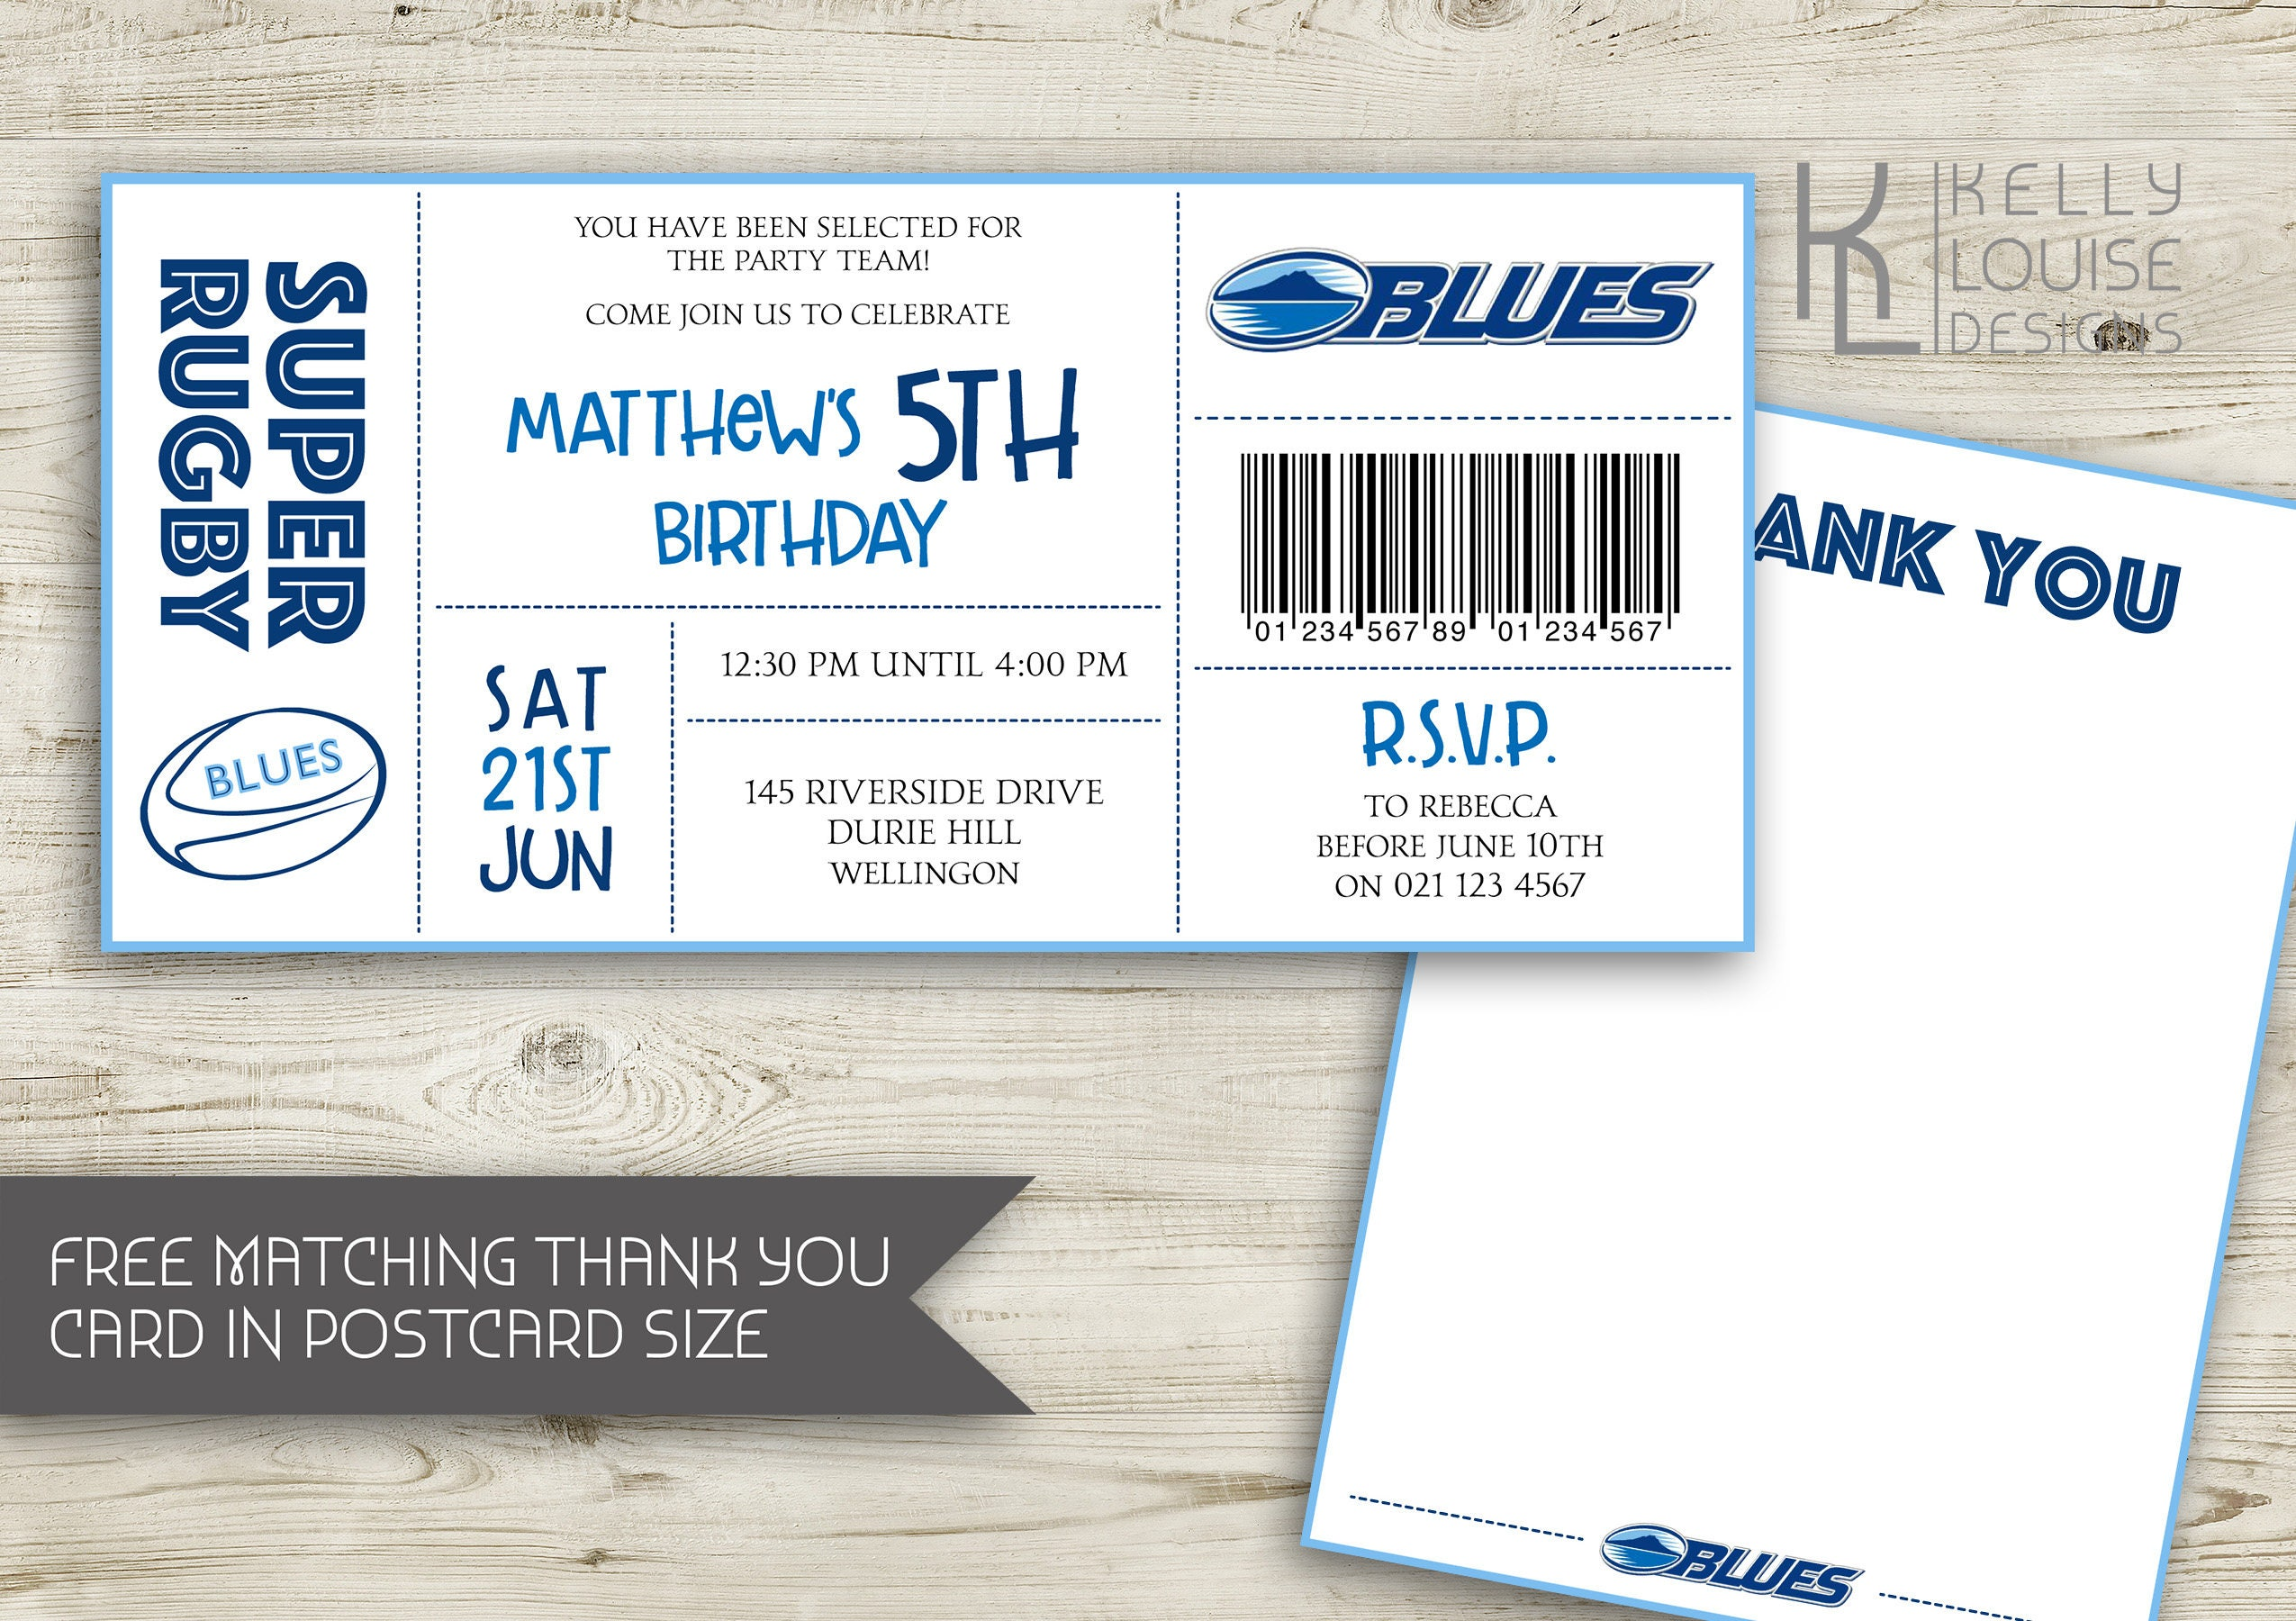 Auckland blues birthday invitation rugby birthday party new auckland blues birthday invitation rugby birthday party new zealand rugby super rugby party rugby ticket invitation nz rugby 162 stopboris Image collections